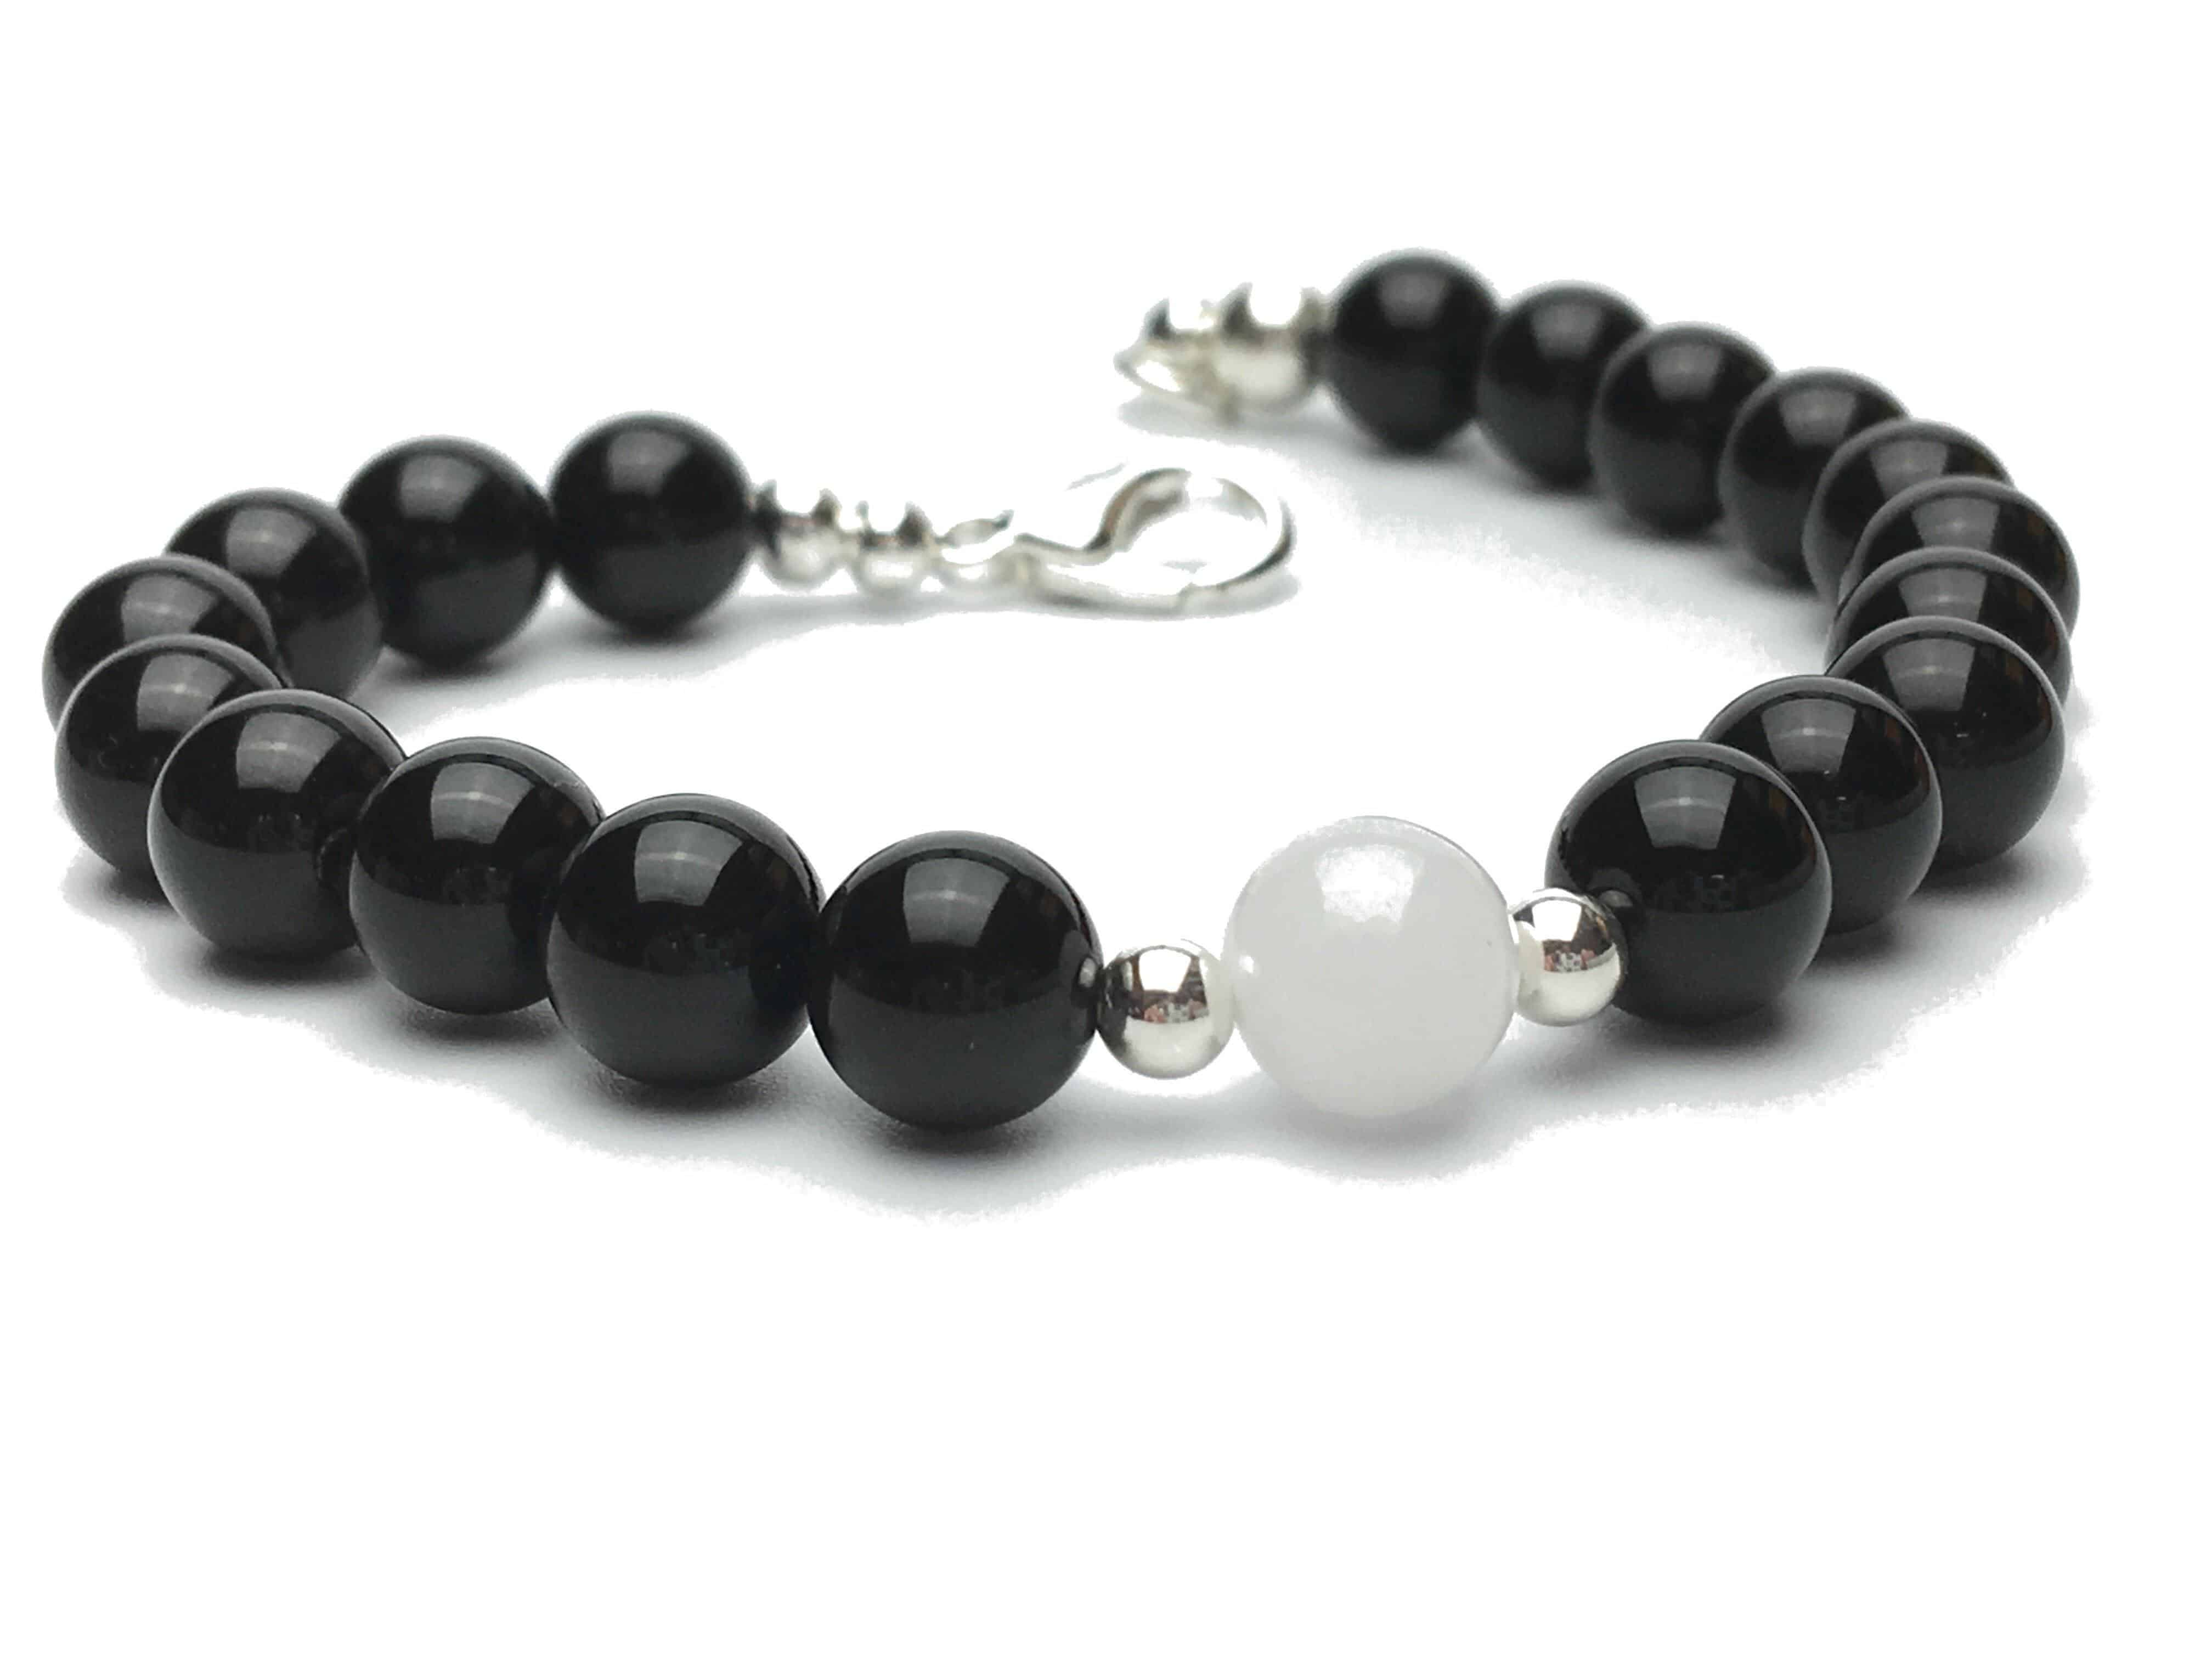 Onyx and White Jade Bead Bracelet with Clasp